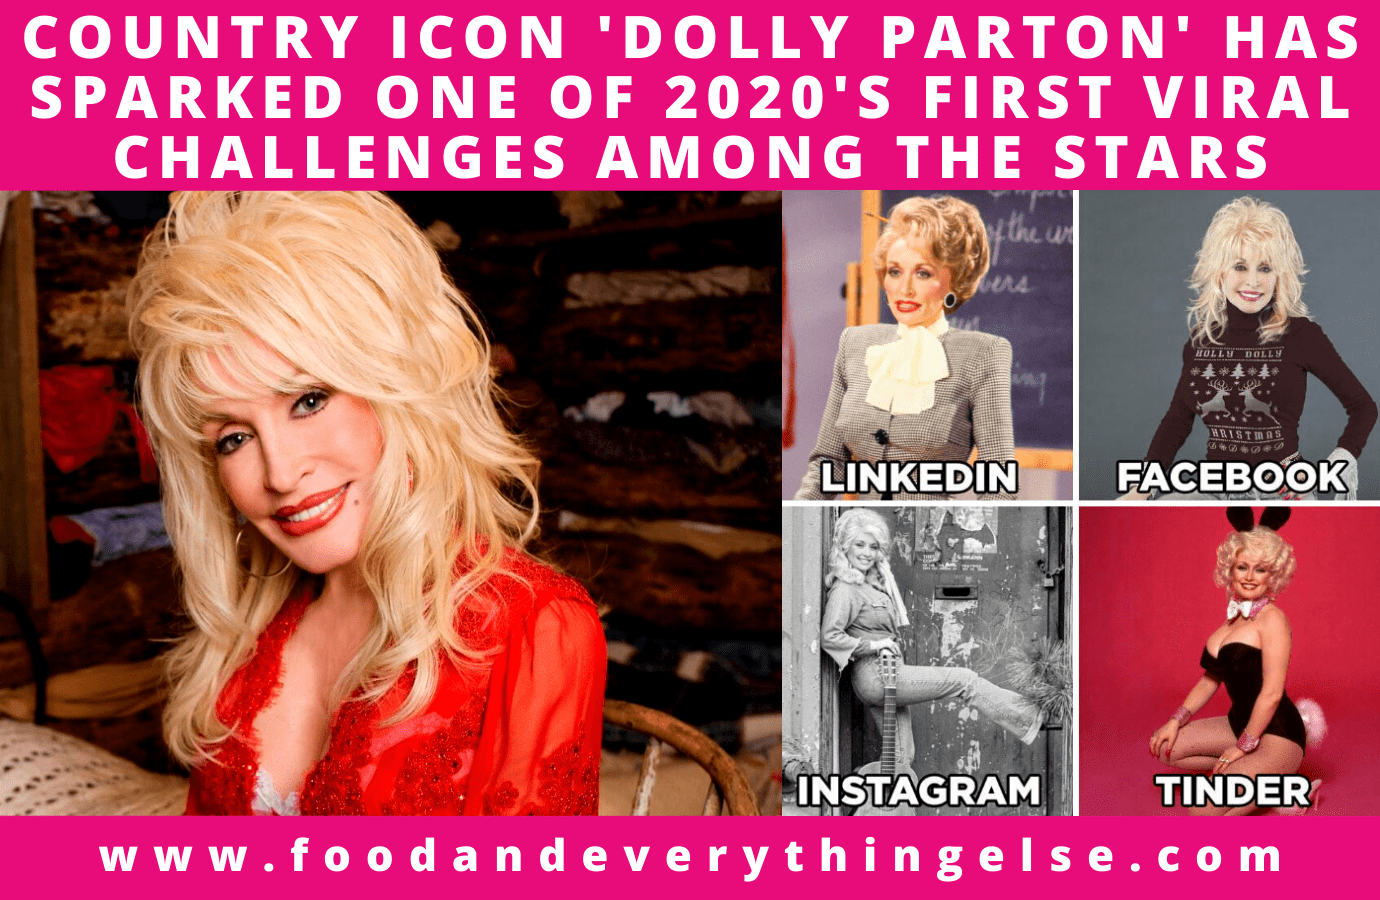 Dolly Parton sparks one of 2020's first viral challenges among the stars